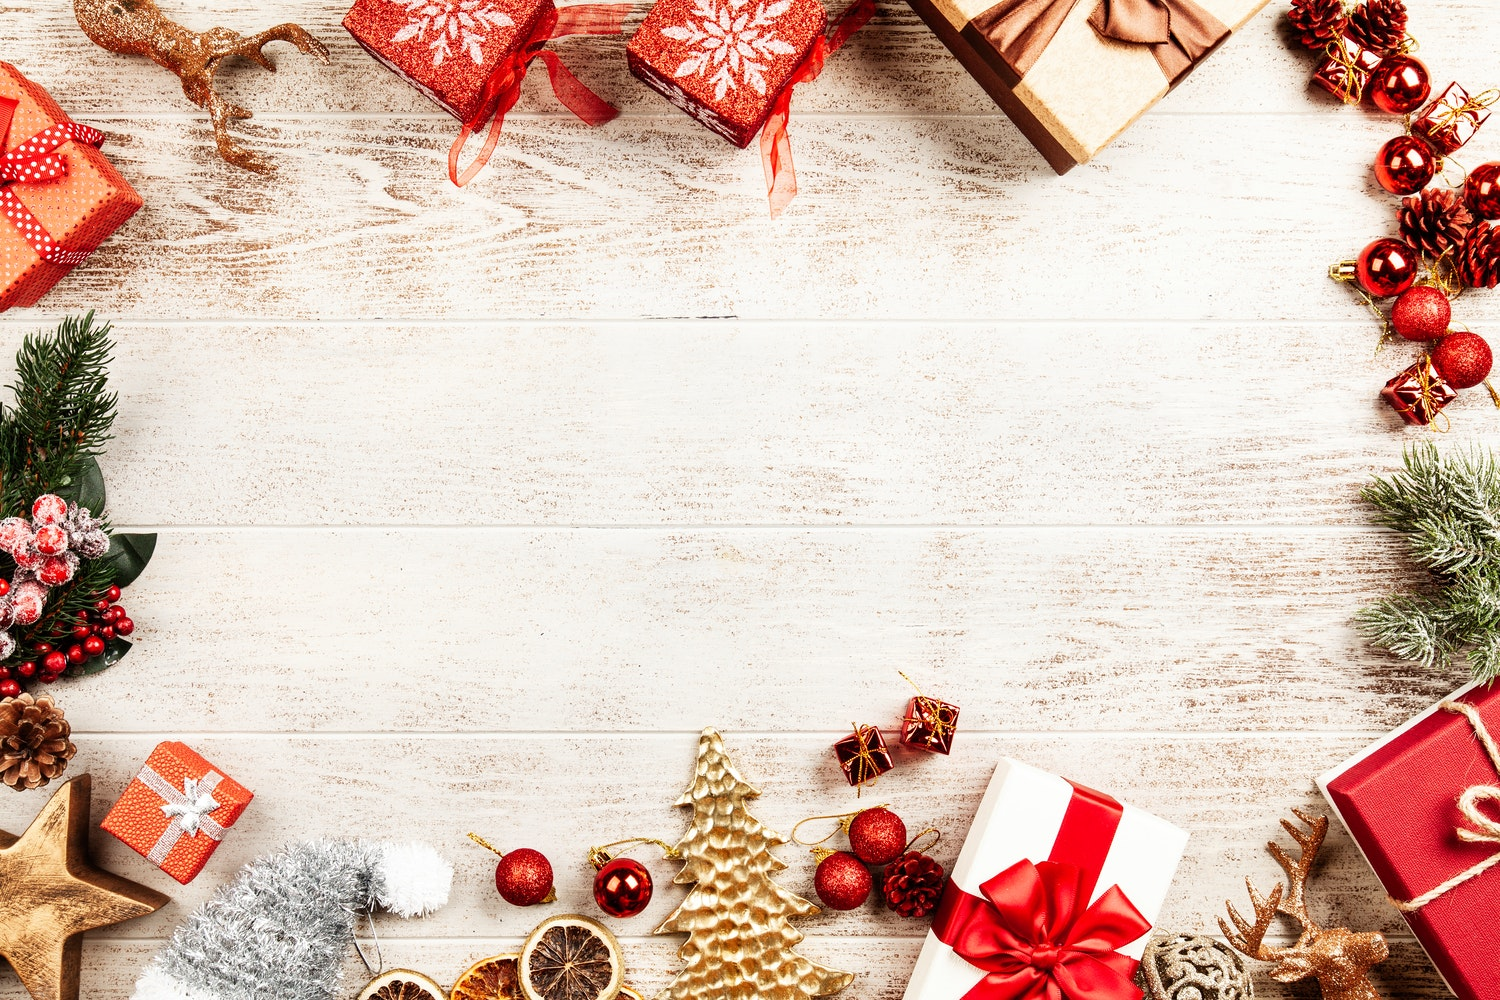 1000+ great christmas background photos · pexels · free stock photos